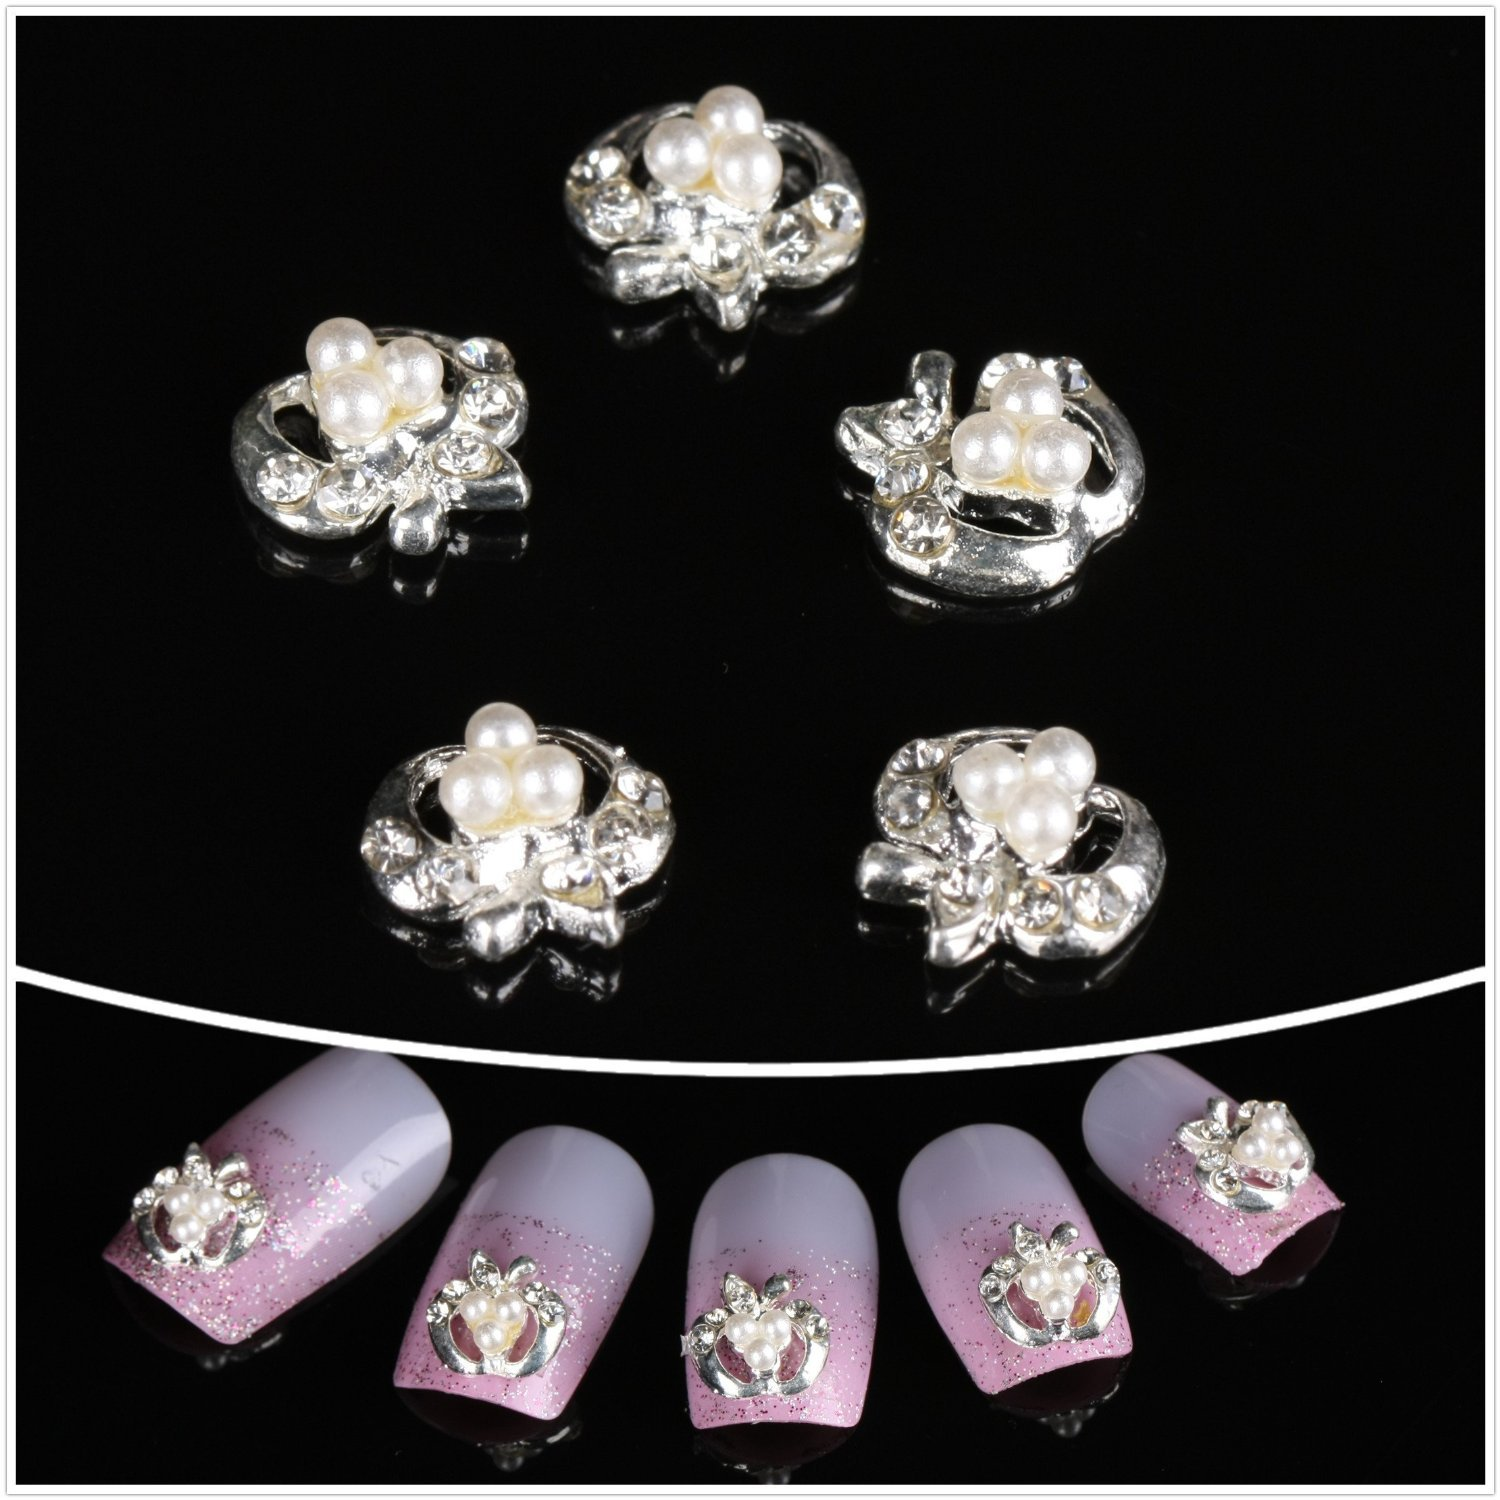 So Beauty 100pcs 3D Apple Style with Artificial Pearl Nail Art/DIY Nail Decoration by So Beauty